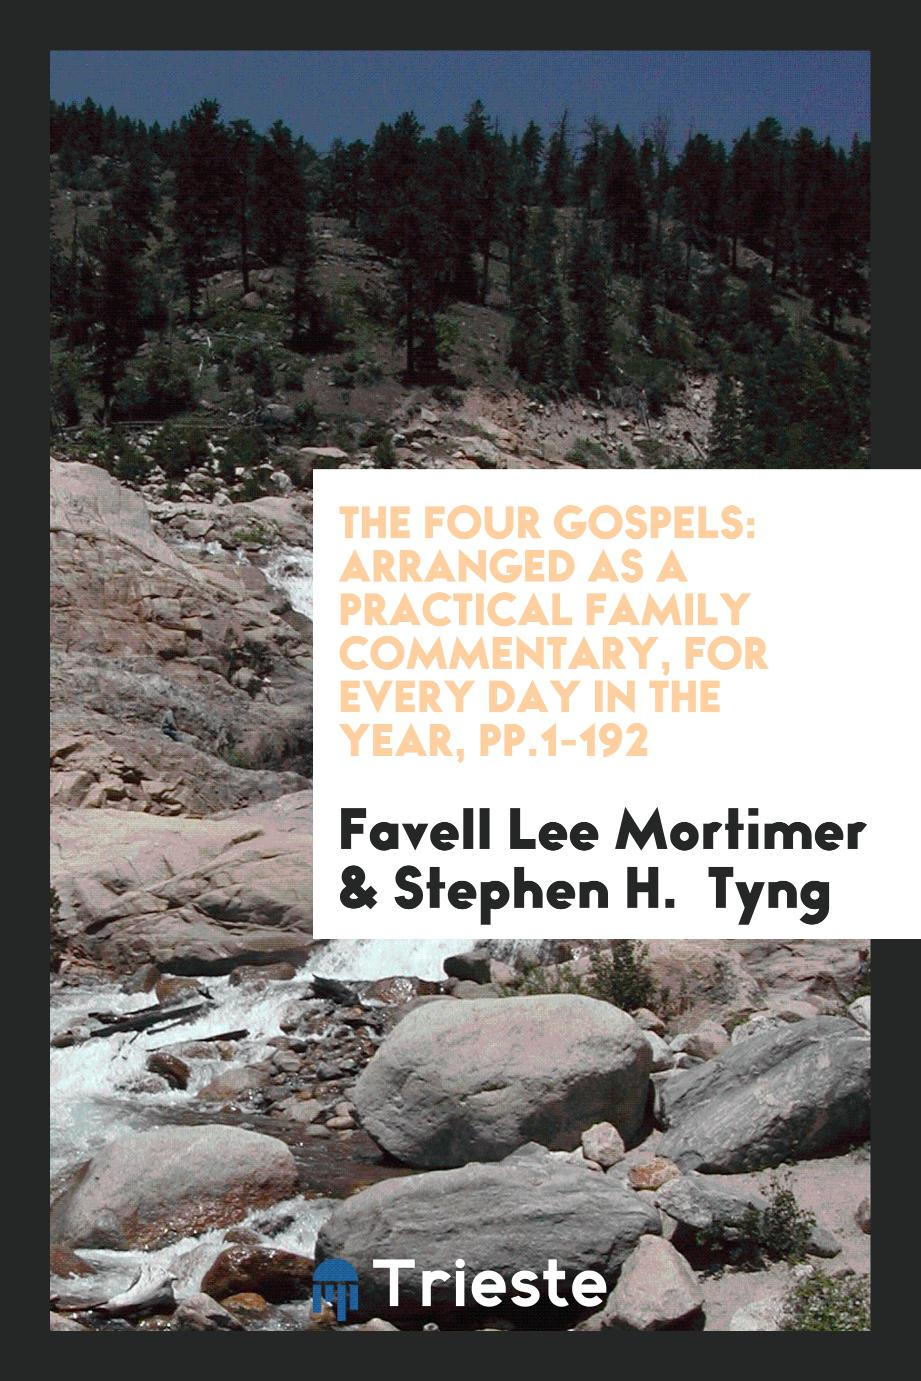 The Four Gospels: Arranged as a Practical Family Commentary, for Every Day in the Year, pp.1-192